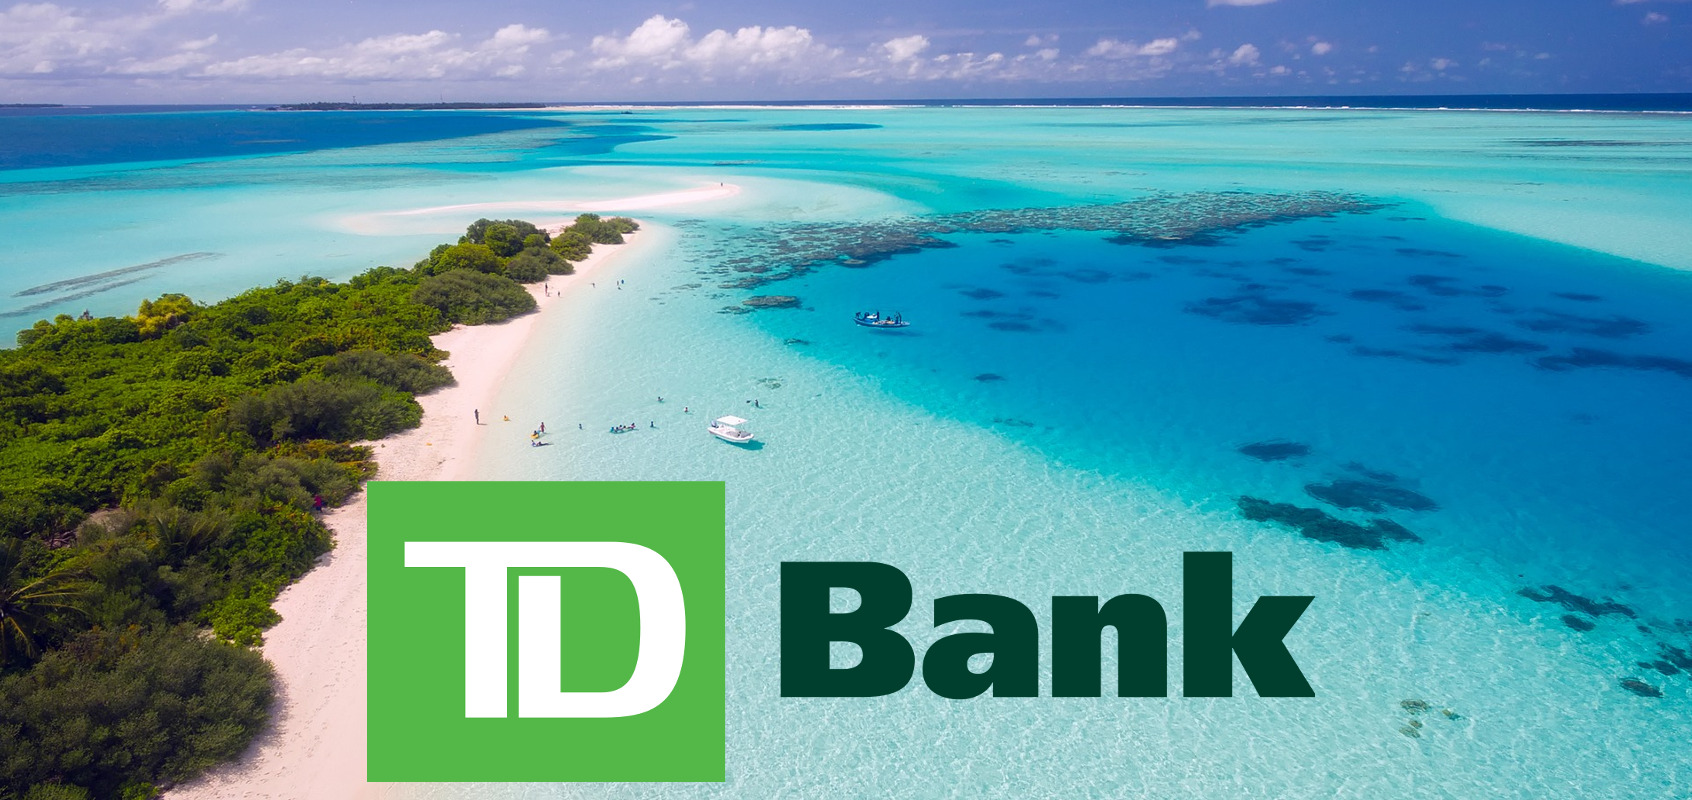 Td Bank Holidays For 2018 And 2019 Banks